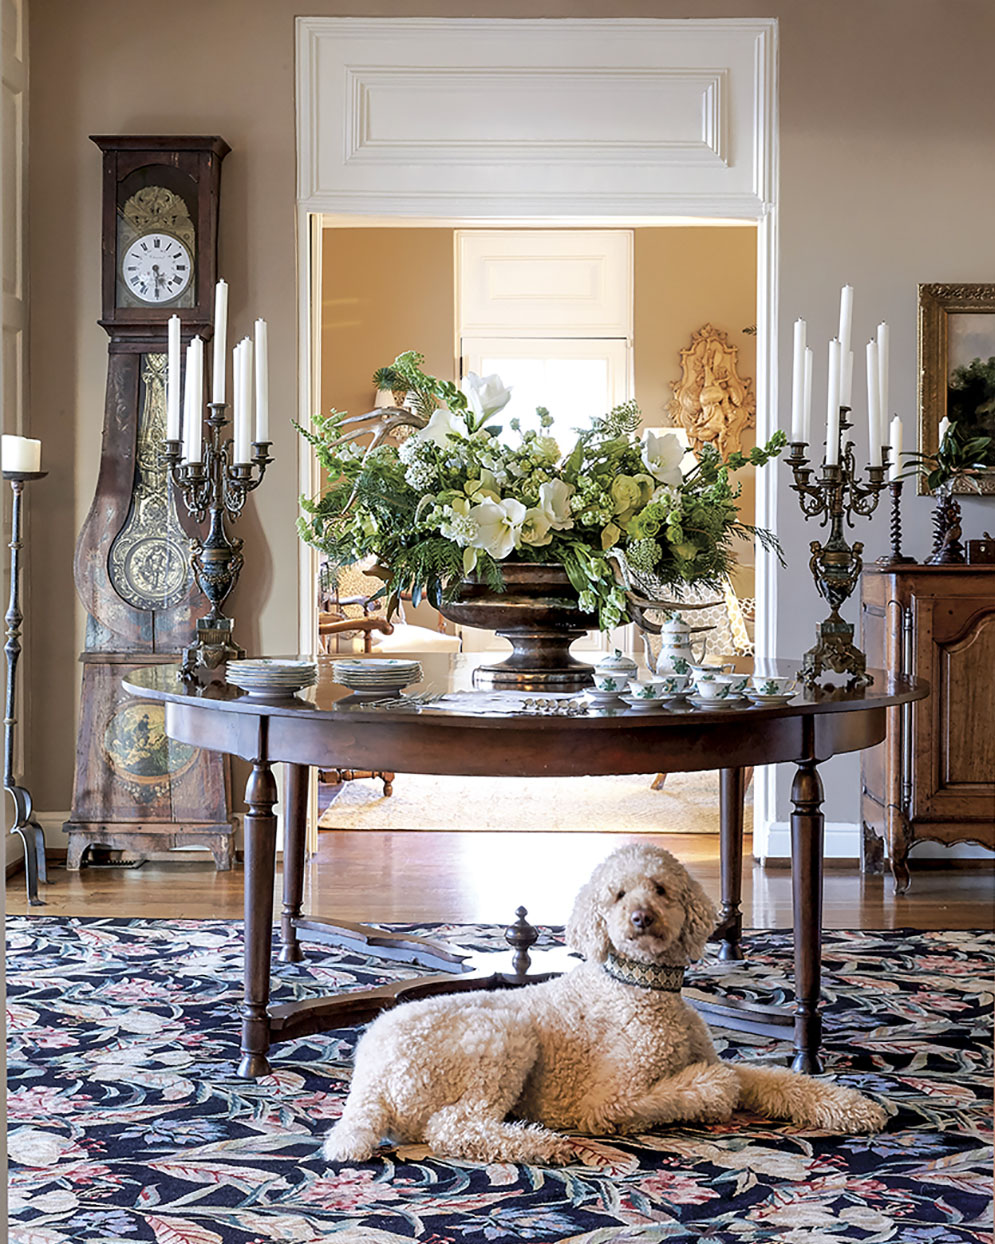 Grand green and white holiday floral design by Kakhi Huffaker Wakefield of K Wakefield Designs, placed on a round entry table in an elegantly styled foyer. A dog lies beneath the table